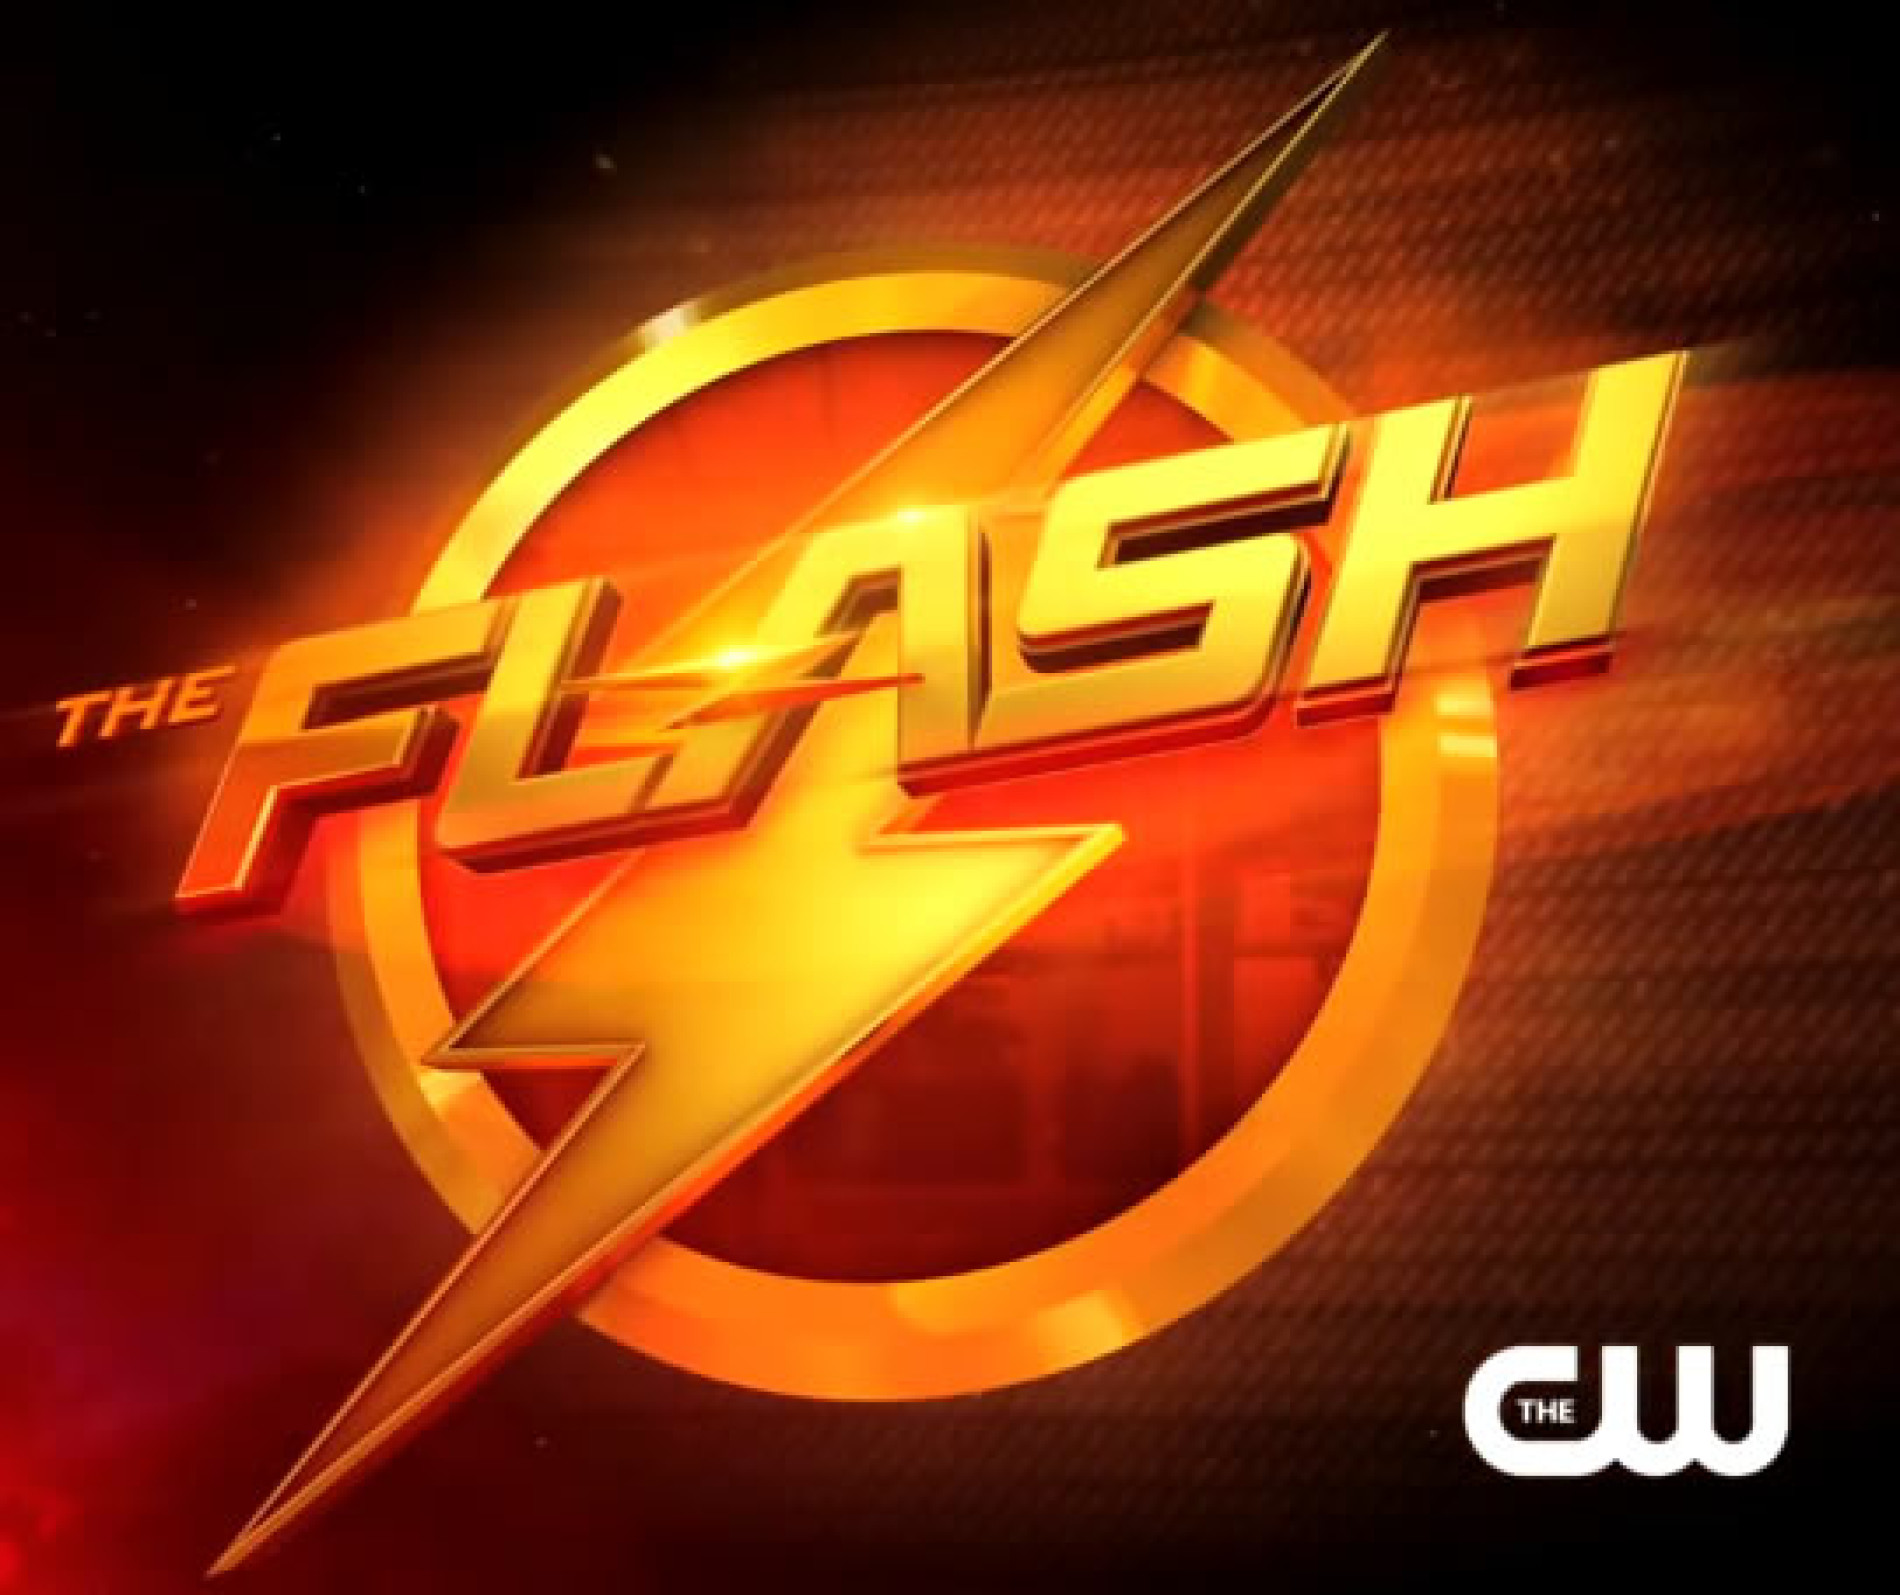 The Flash Série DC Comics da CW